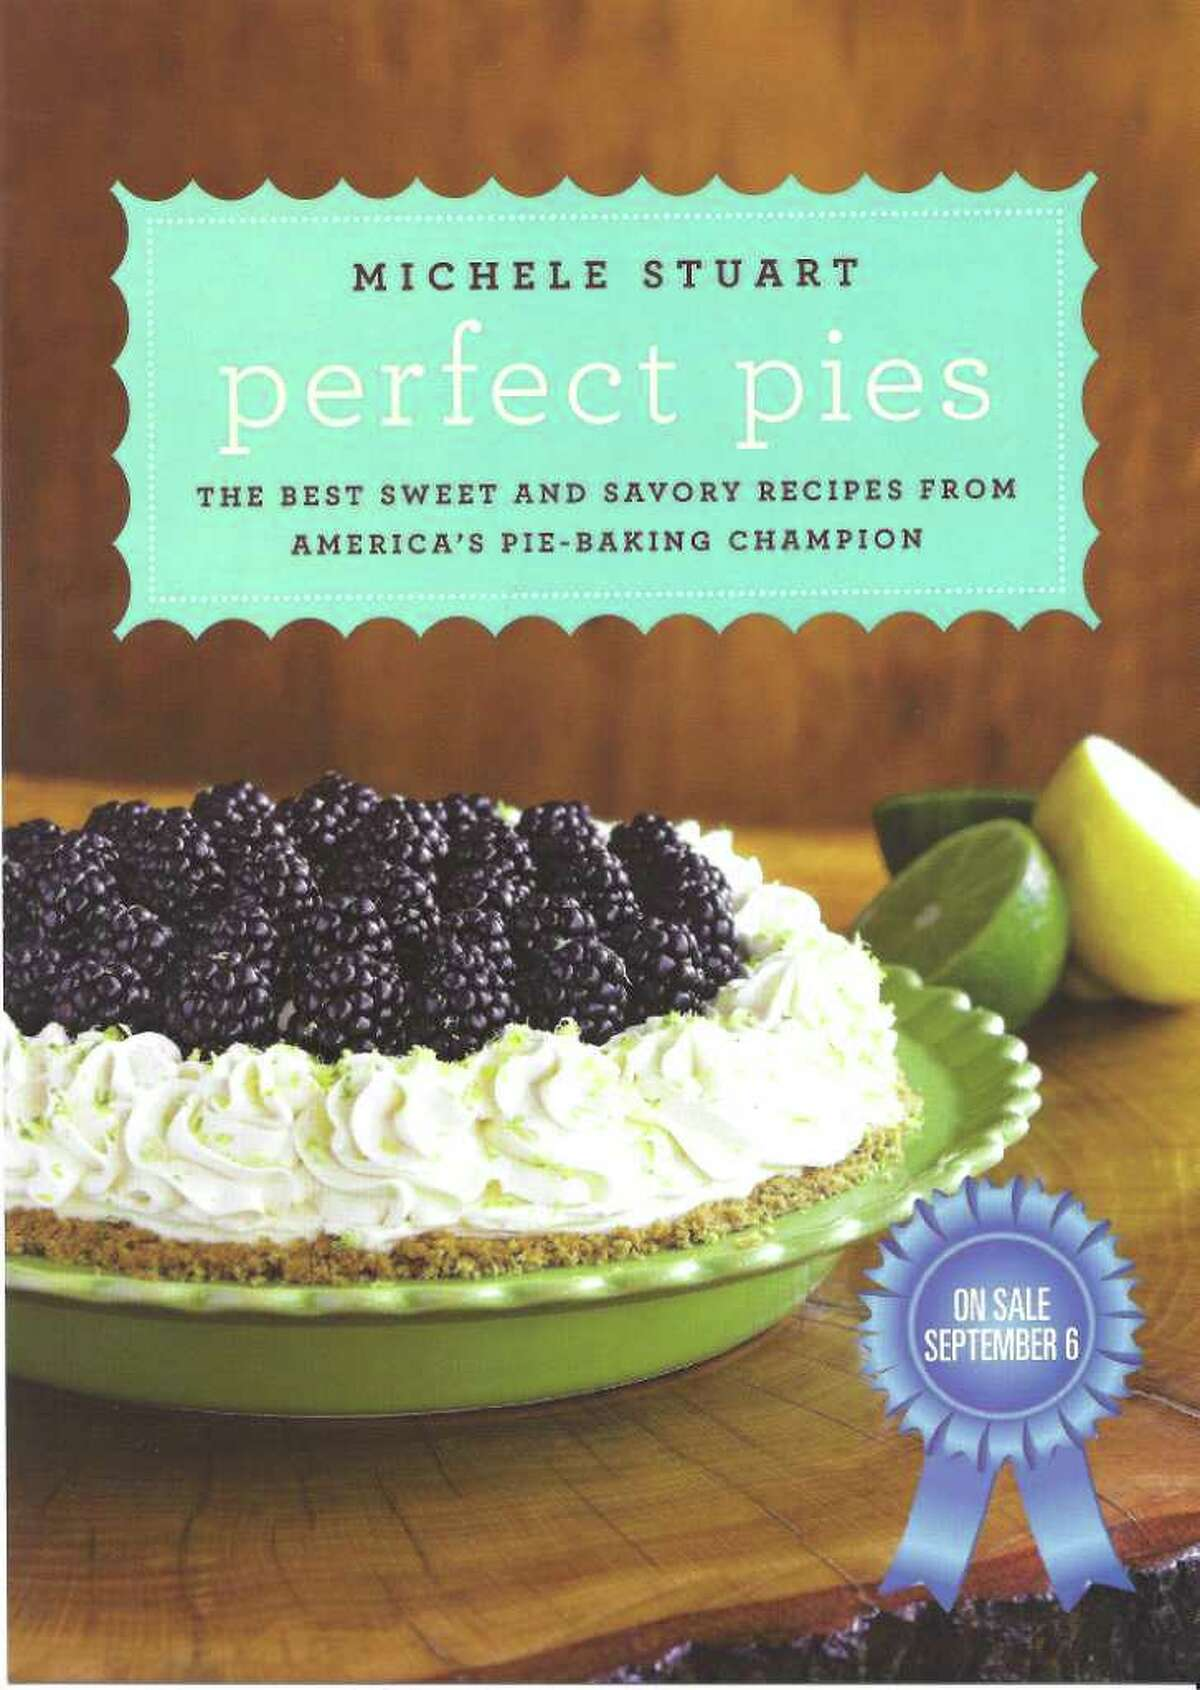 Stuart will sign her new cookbook at the Norwalk Library on Wednesday.